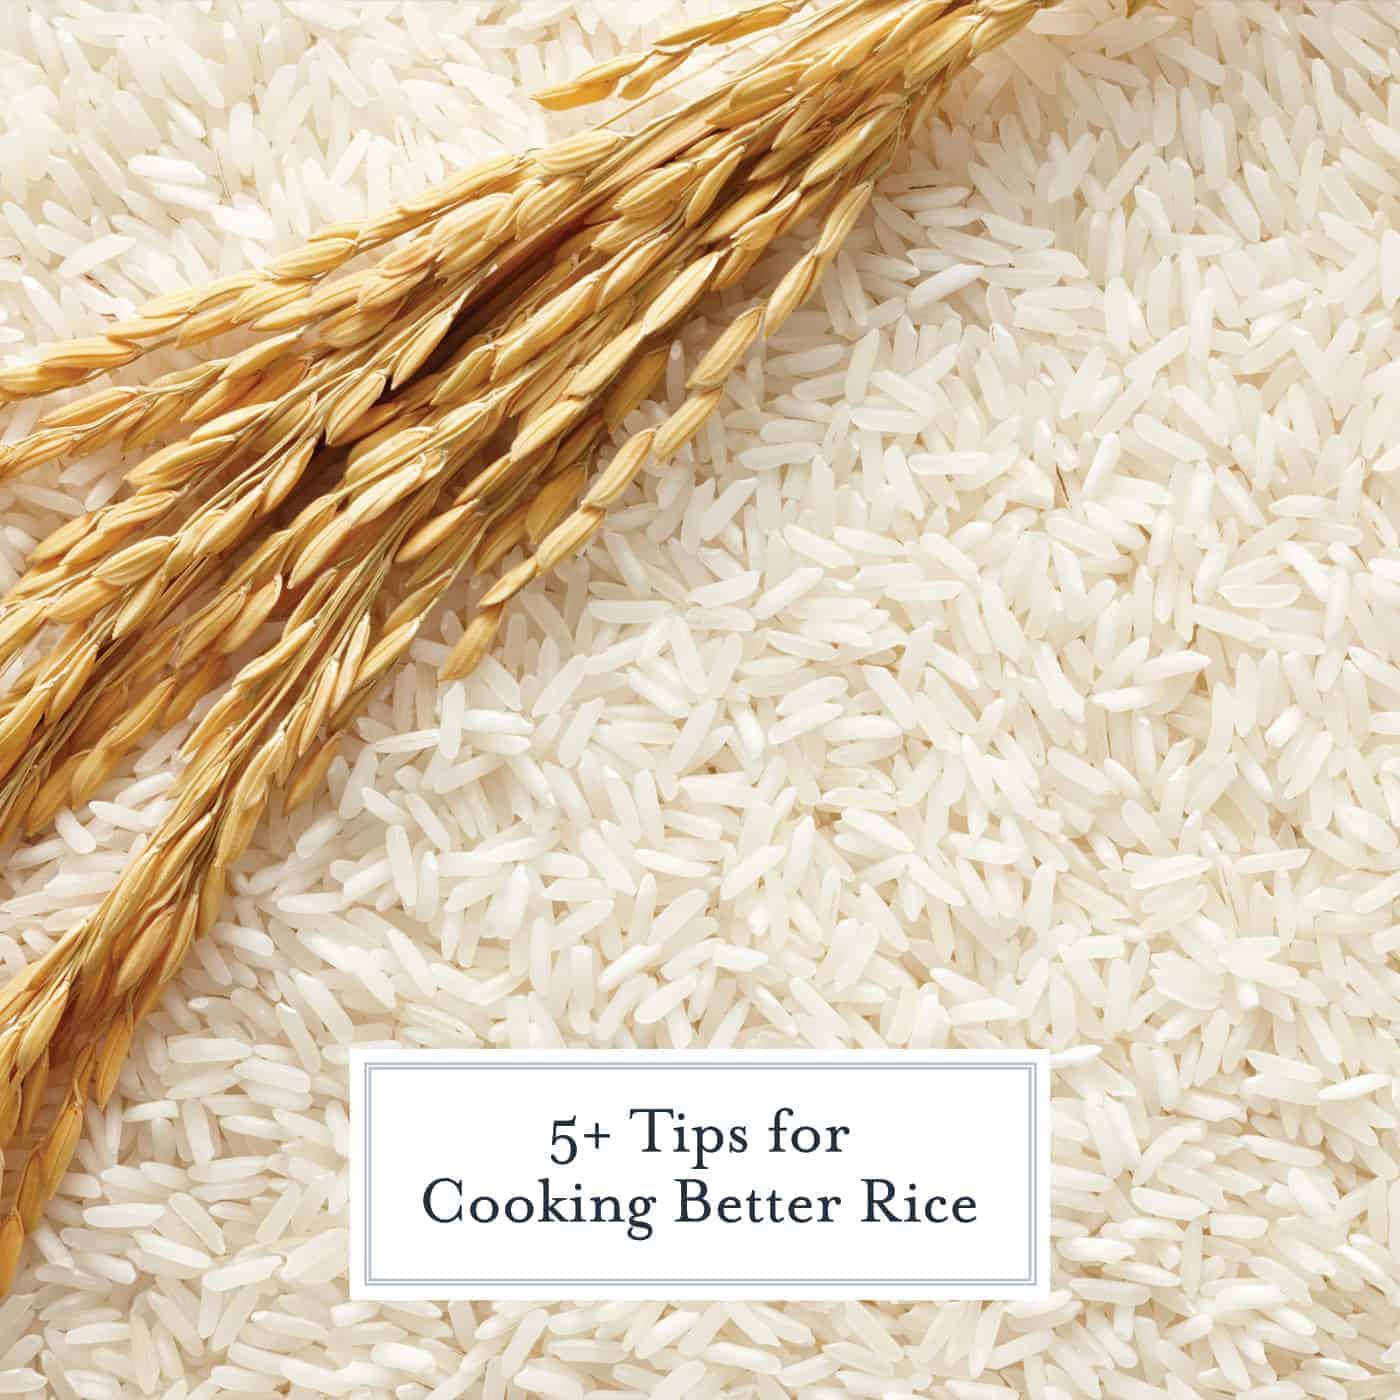 Looking for perfect rice? Here are 5+ tips that can be applied to any rice recipe for perfectly plump rice! #howtomakerice #cookingrice www.savoryexperiments.com